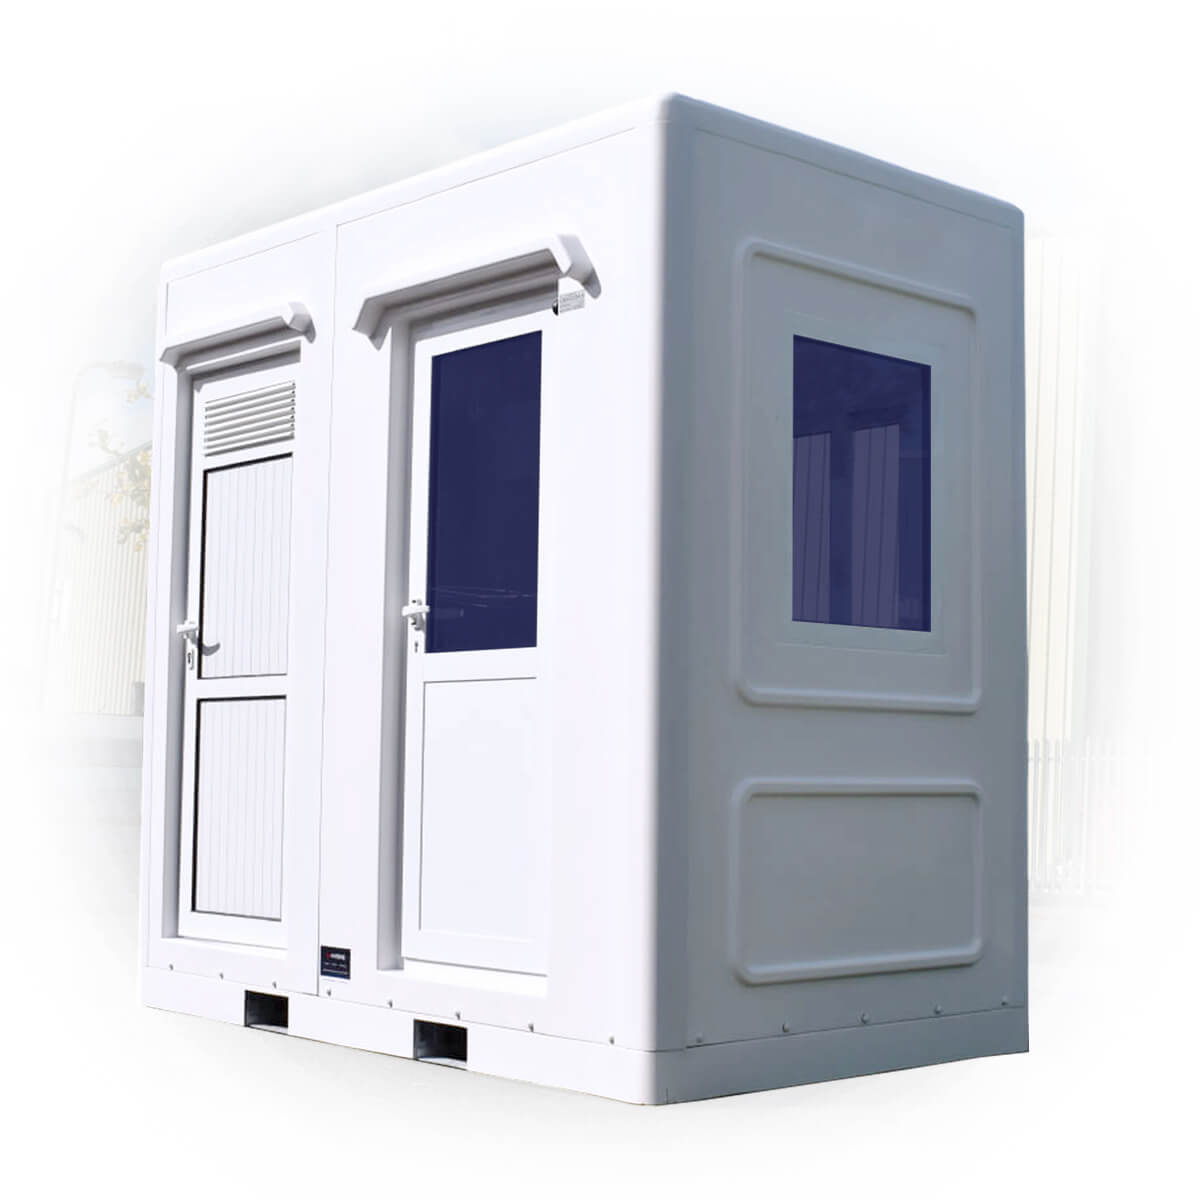 background image of a small white welfare unit kiosk with two doors